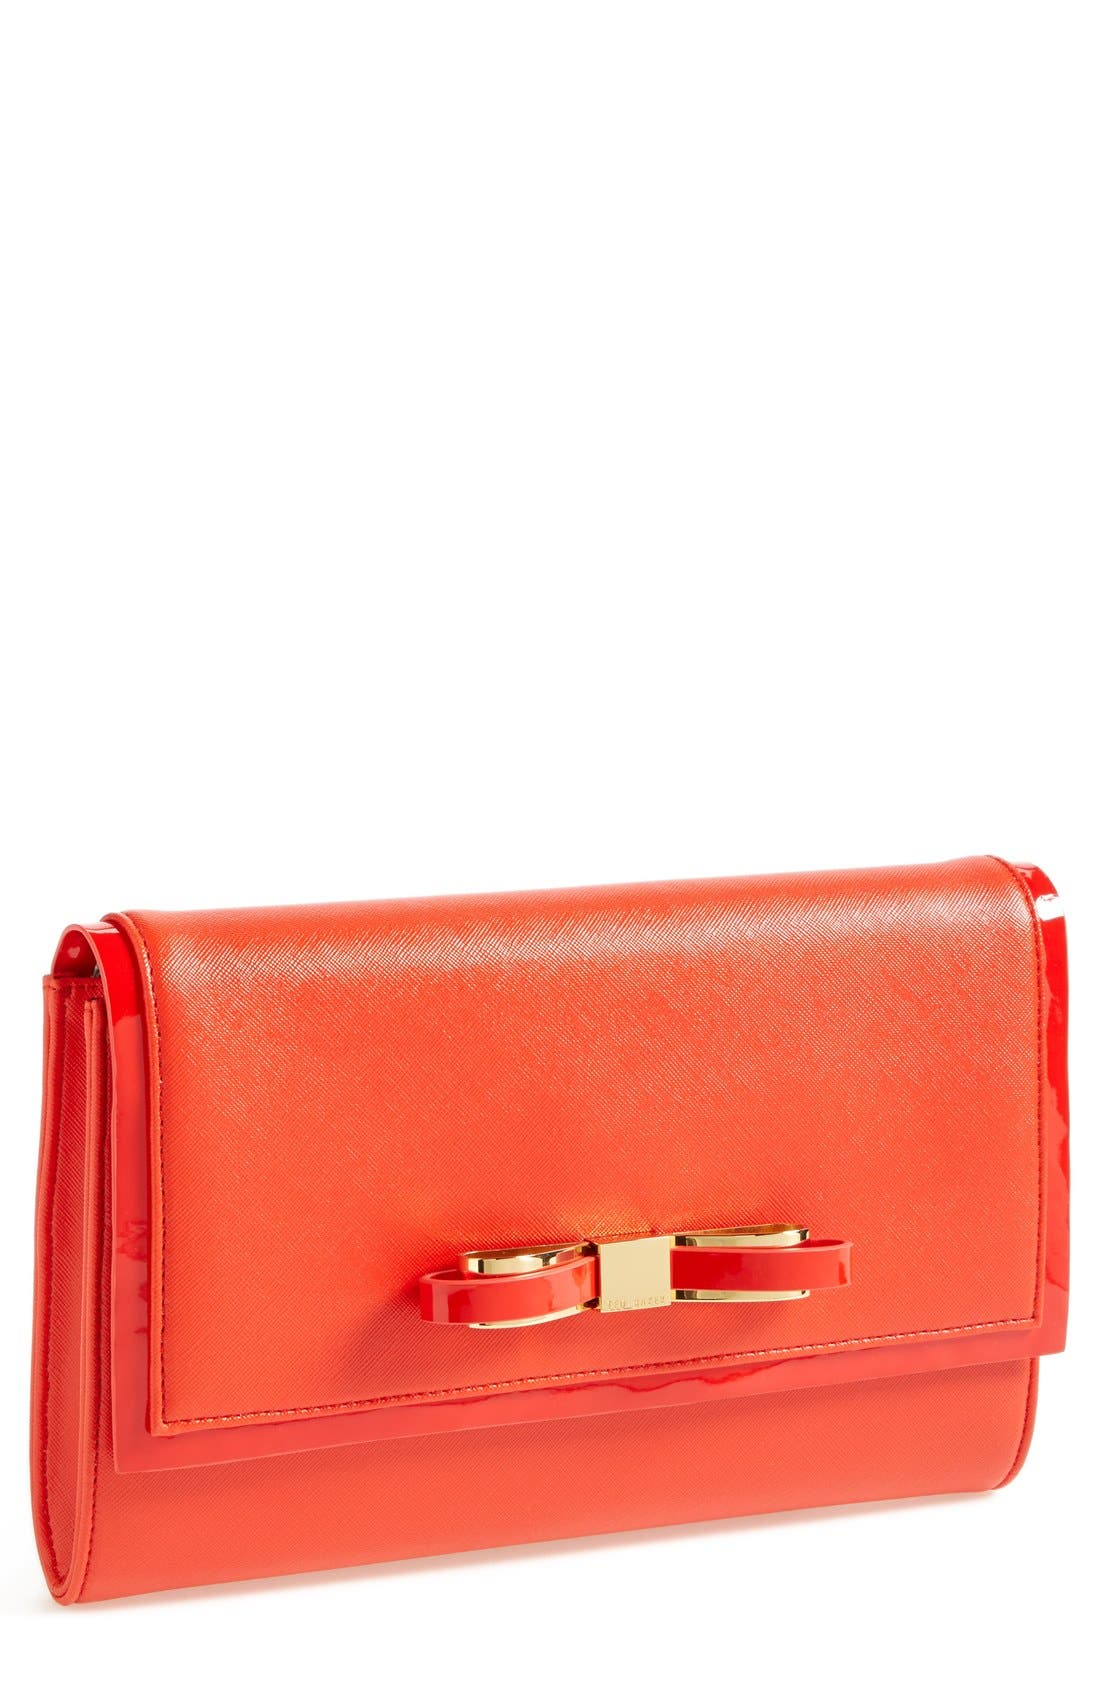 Main Image - Ted Baker London 'Bow' Clutch